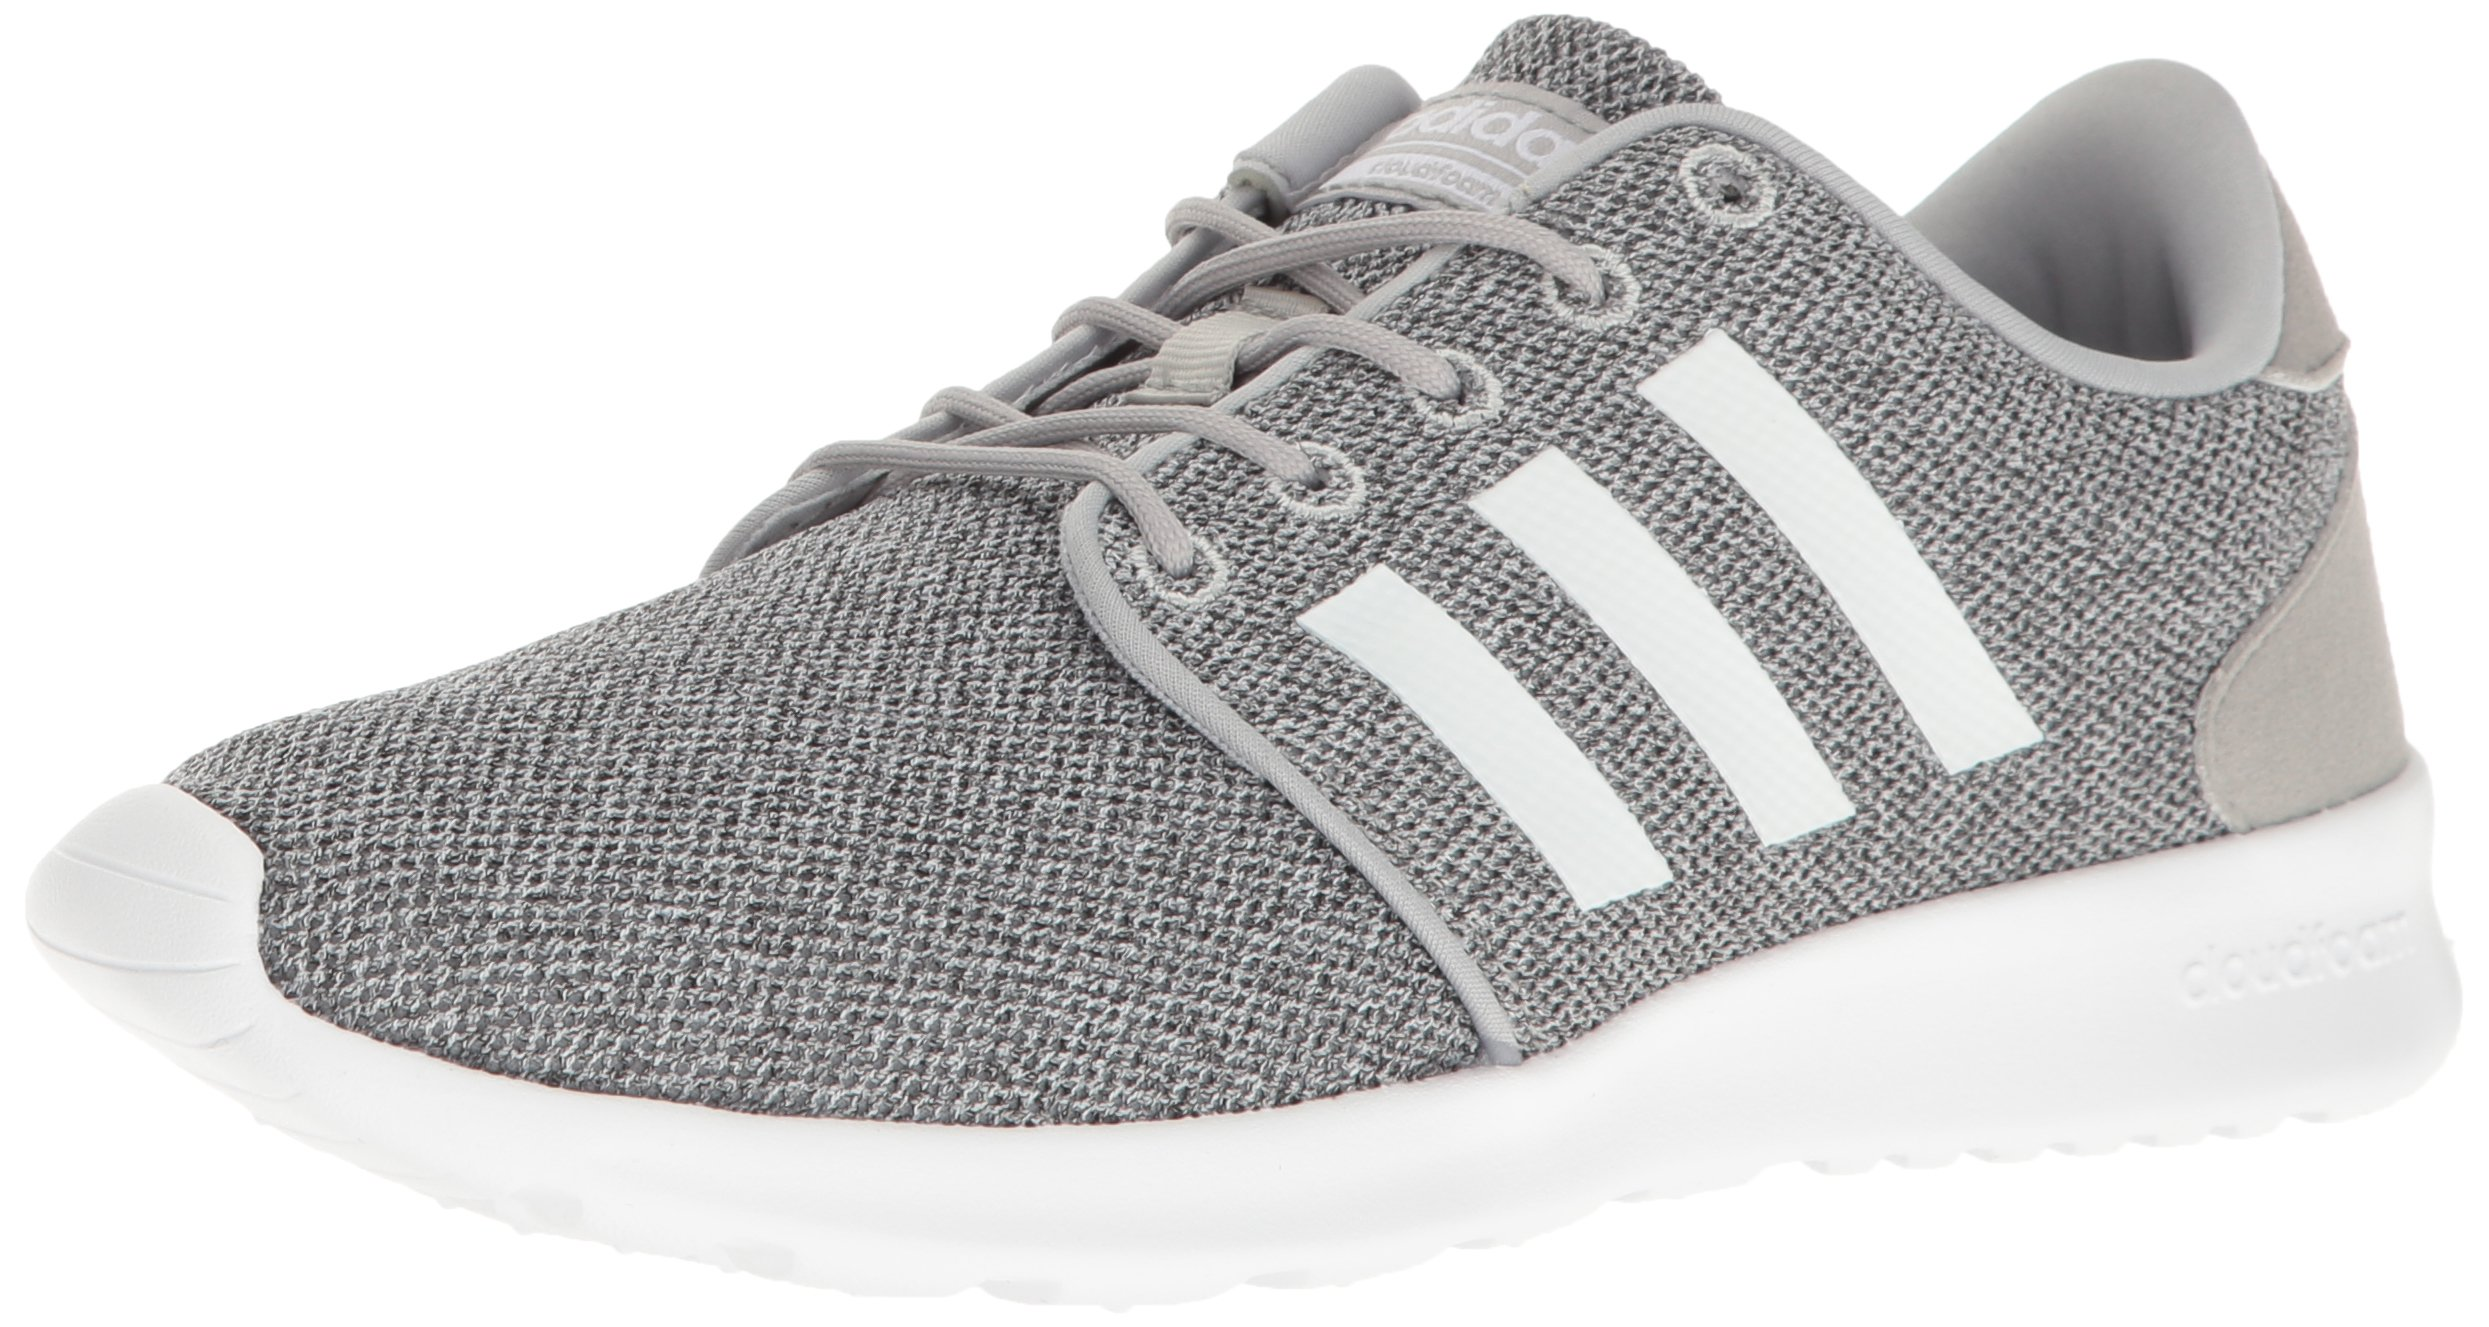 adidas Women's Cloudfoam Qt Racer w Running Shoe, Clear Onix/White/Light Onix, 5 M US